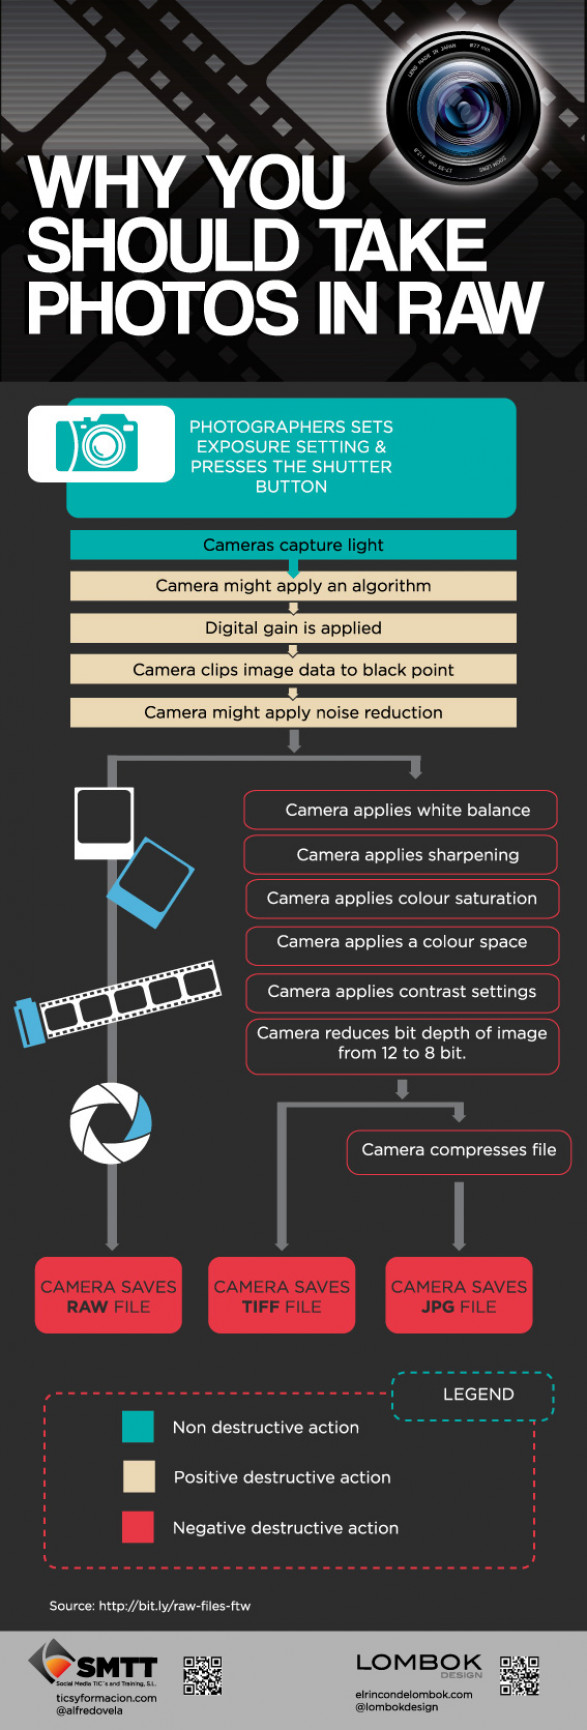 why you should take photos in raw 502914ec11552 w587 Why you should take Photos in RAW? (Infographic)